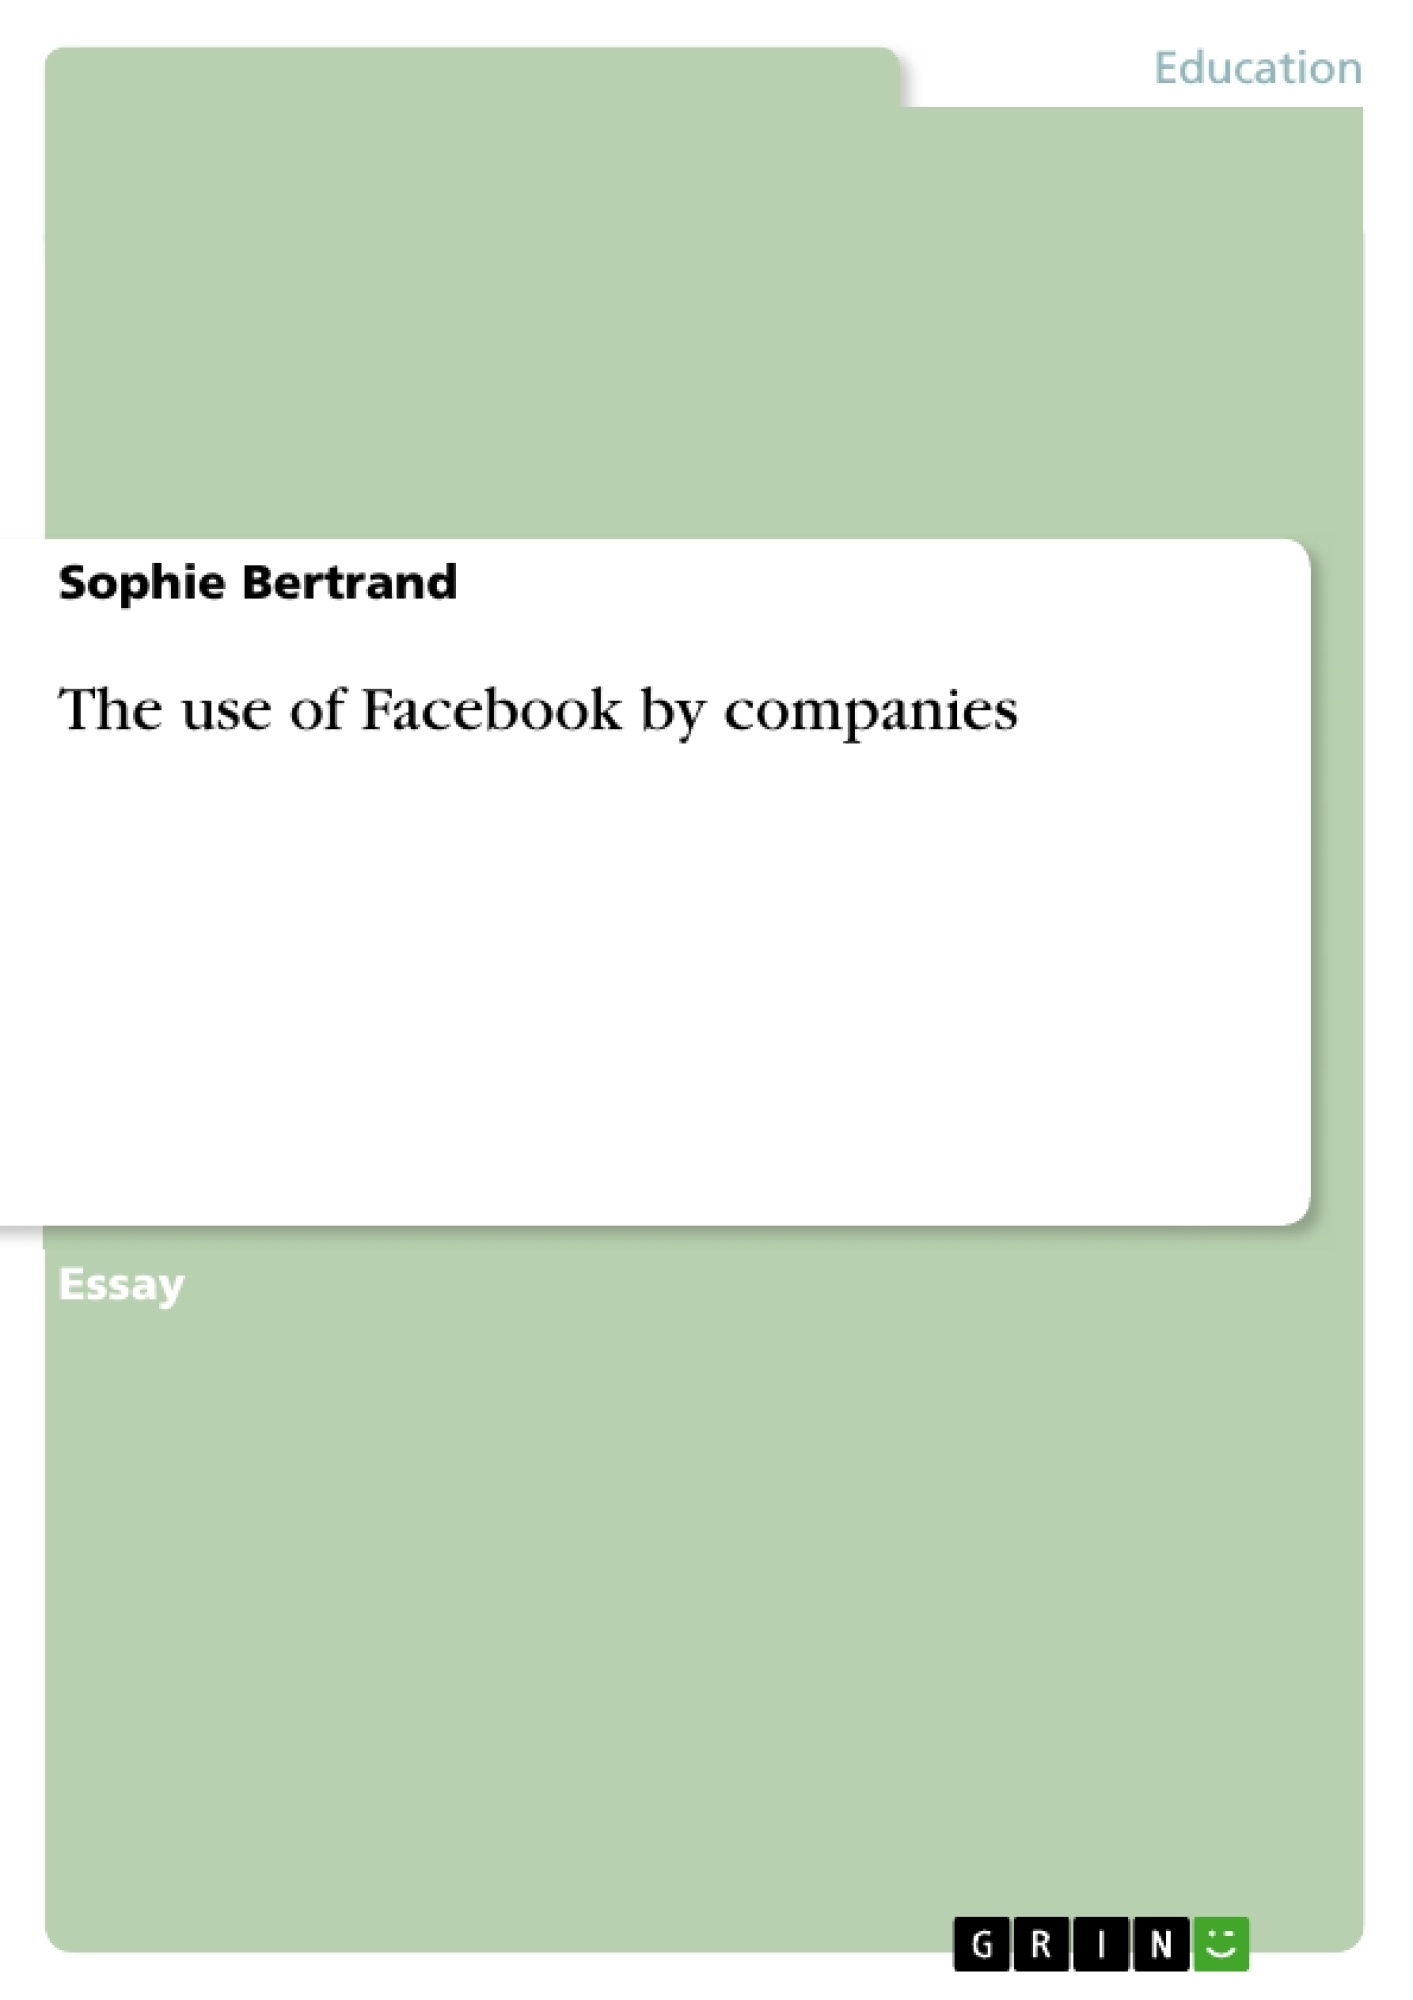 Title: The use of Facebook by companies